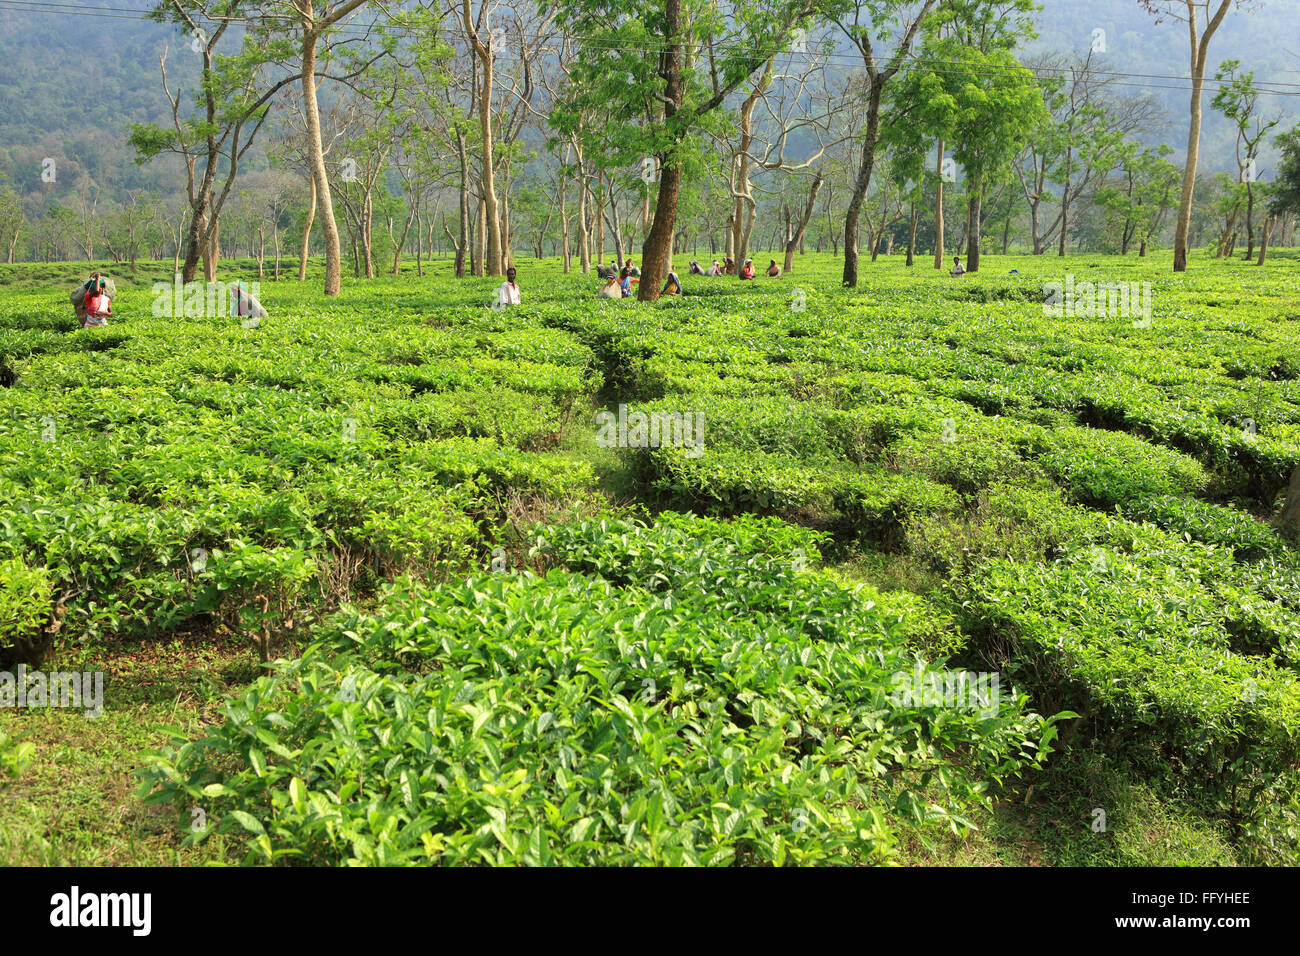 Assam Tea India Stock Photos & Assam Tea India Stock Images - Alamy